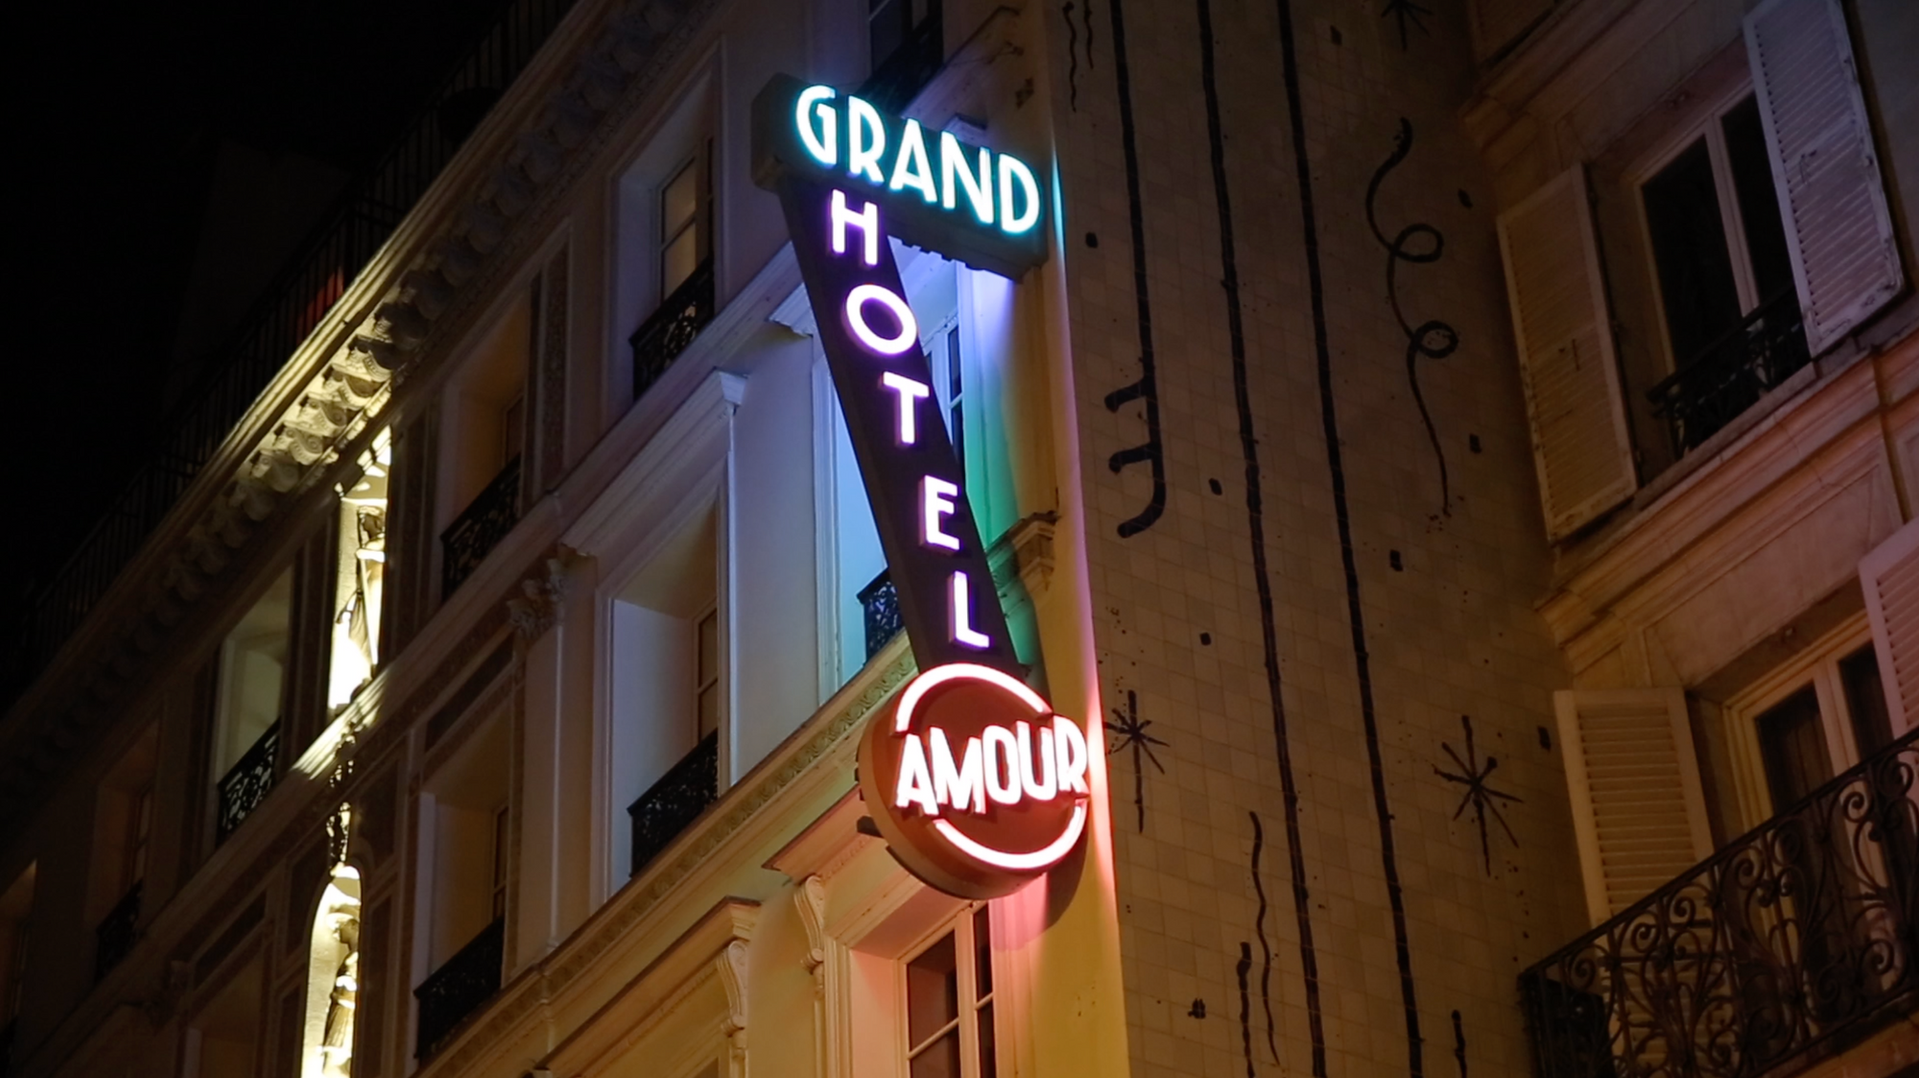 Hotel Grand Amour.png